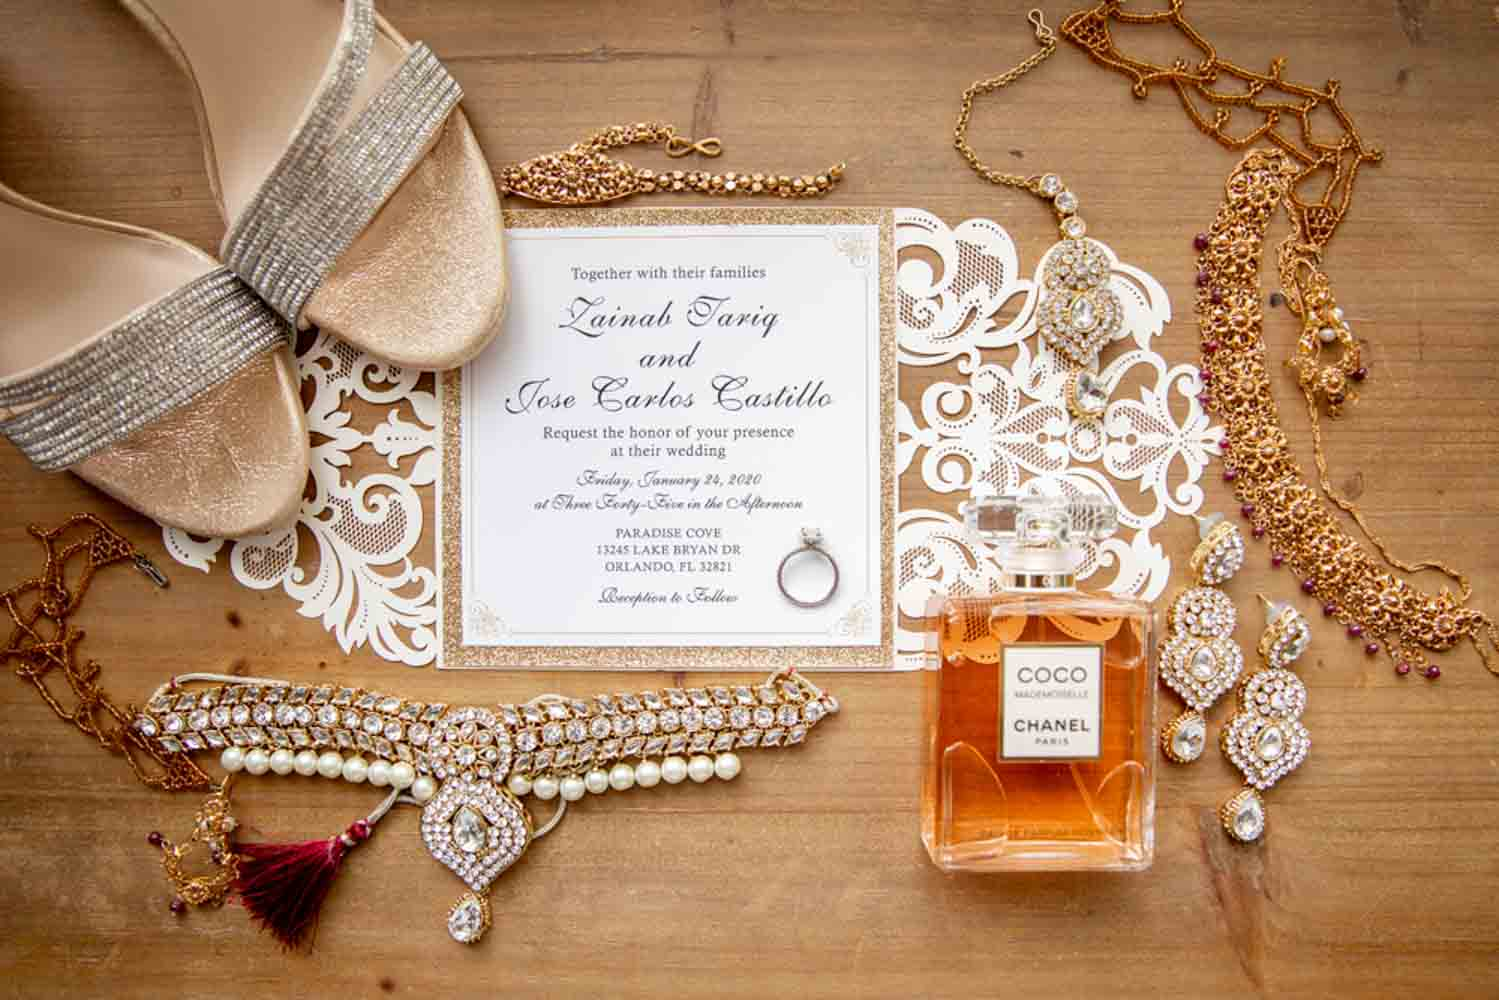 gold toned bridal accessories on white lace wedding invitation